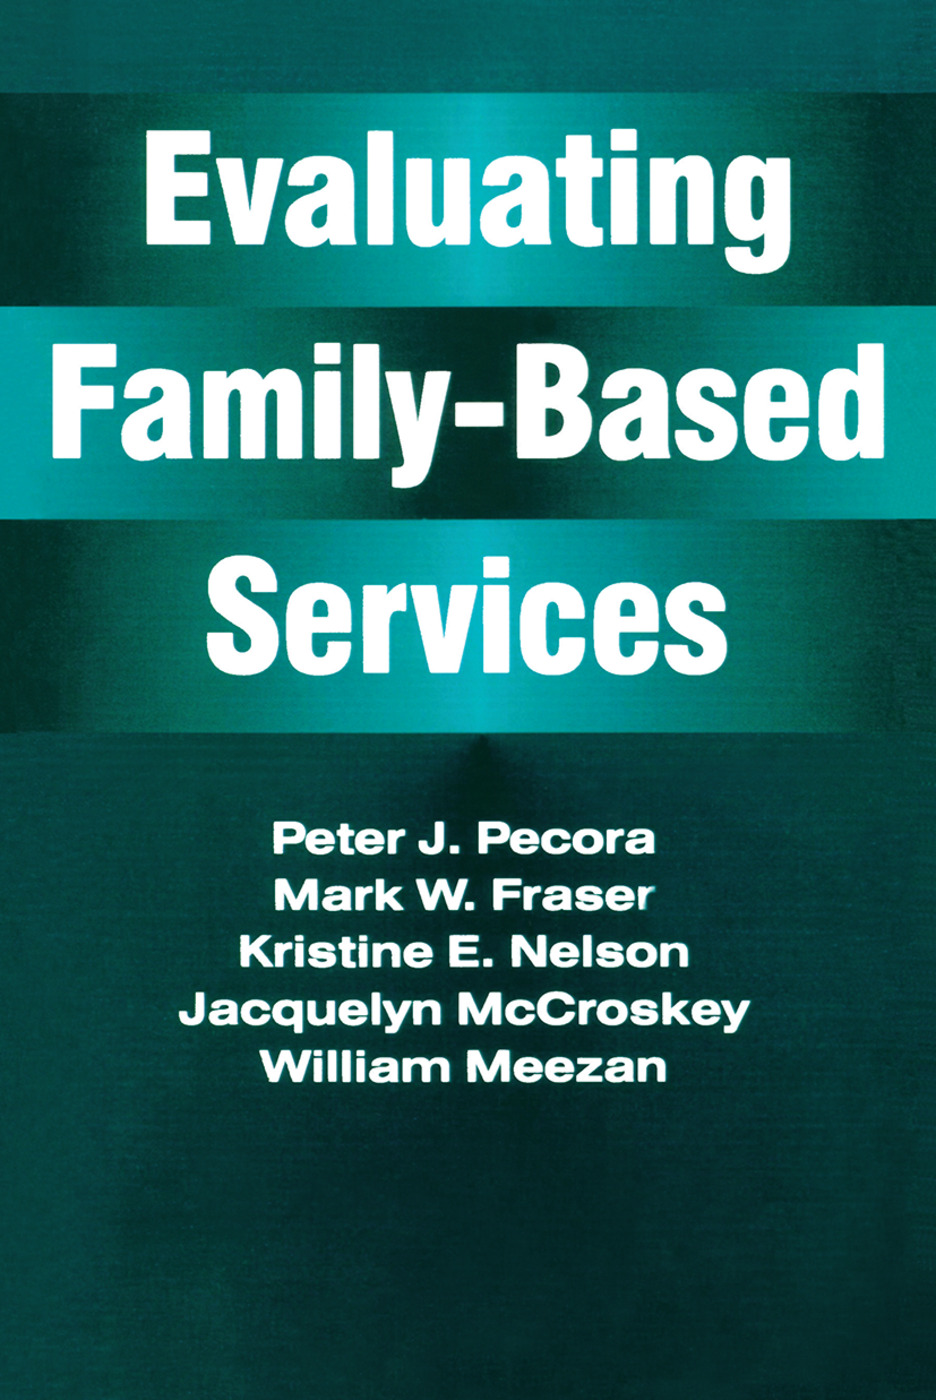 Evaluating Family-Based Services